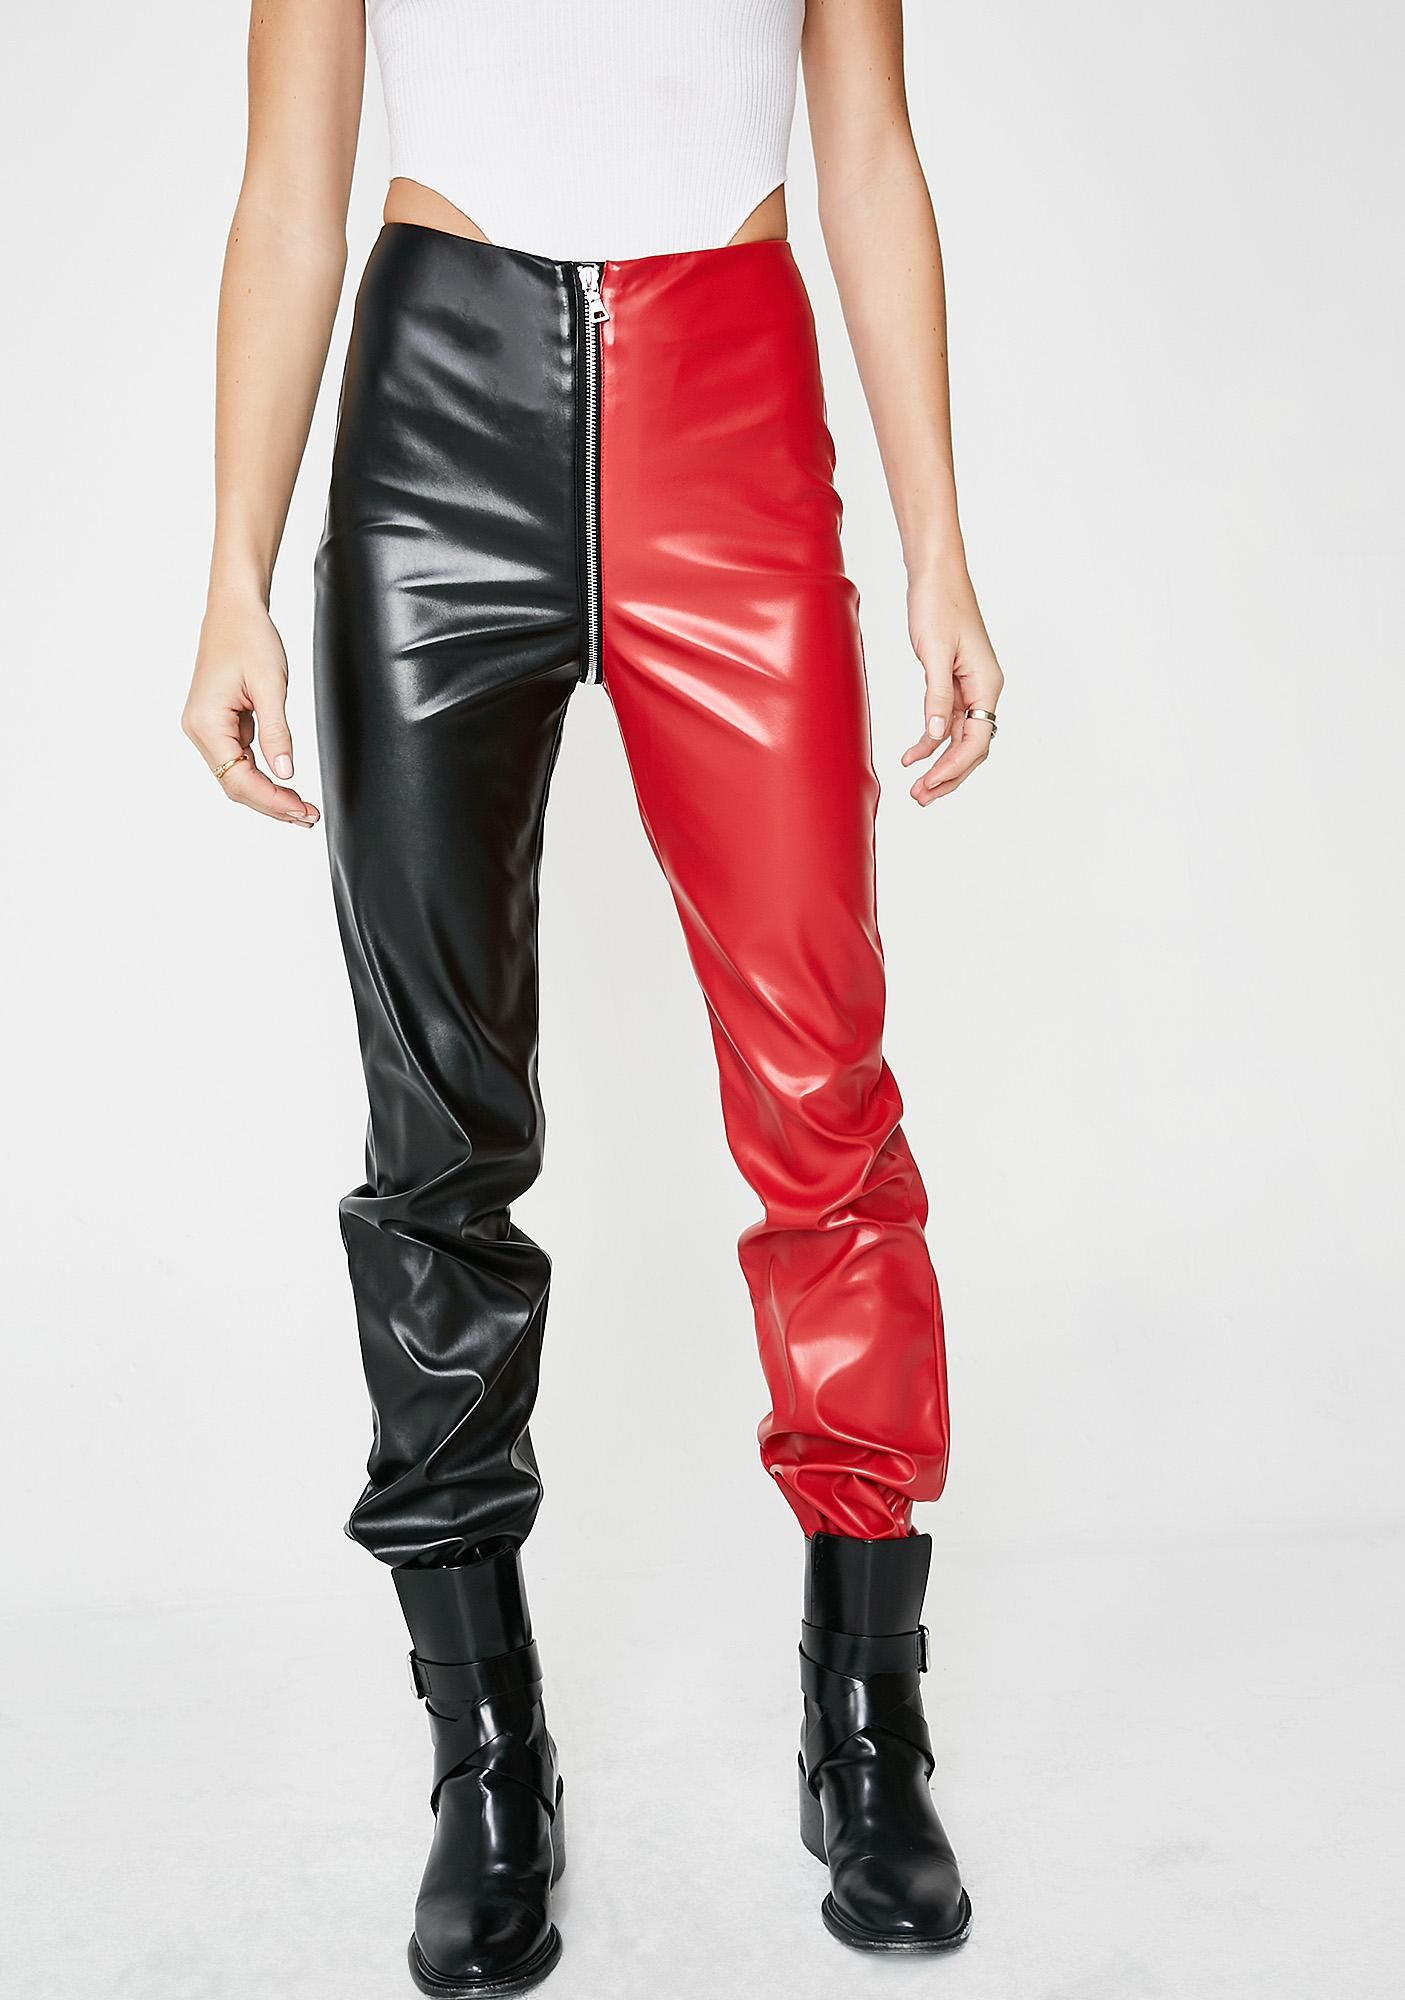 80a6a4fa3 I AM GIA Blondie Pants who really has more fun?! Show 'em you do with these  dope af pants that have one red side, one black side, a slim fit thru the  ...